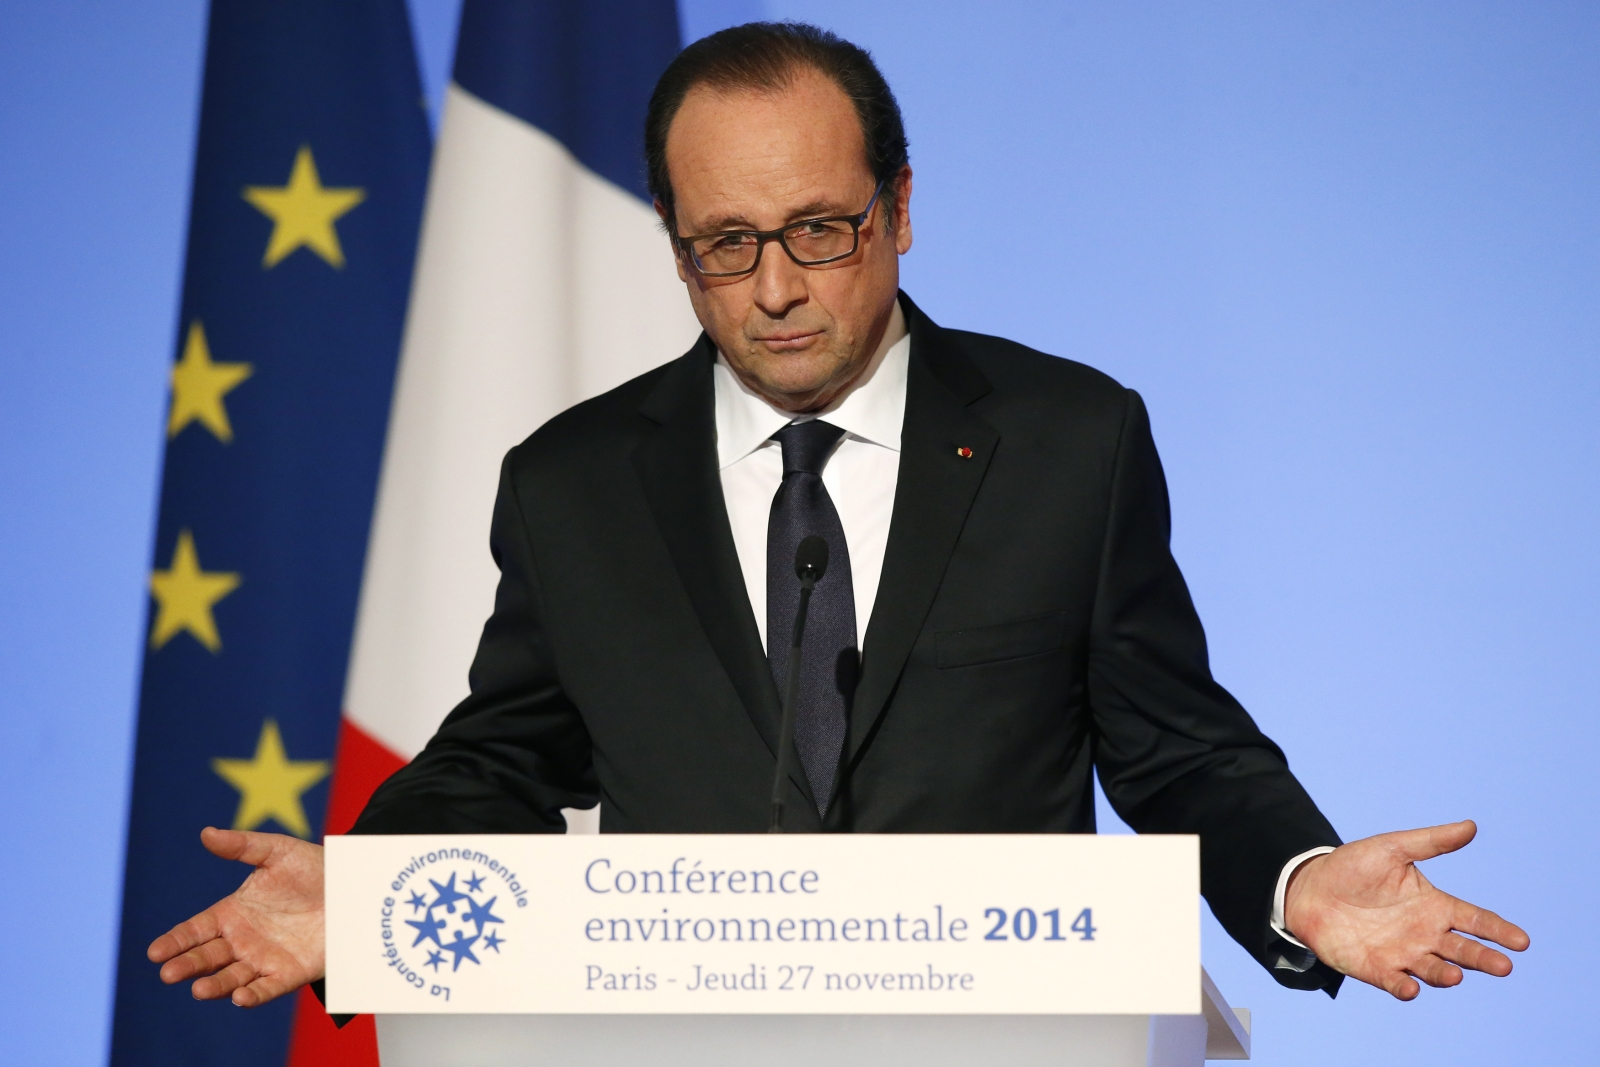 French President François Hollande to visit Ebola-hit Guinea in show of 'solidarity'